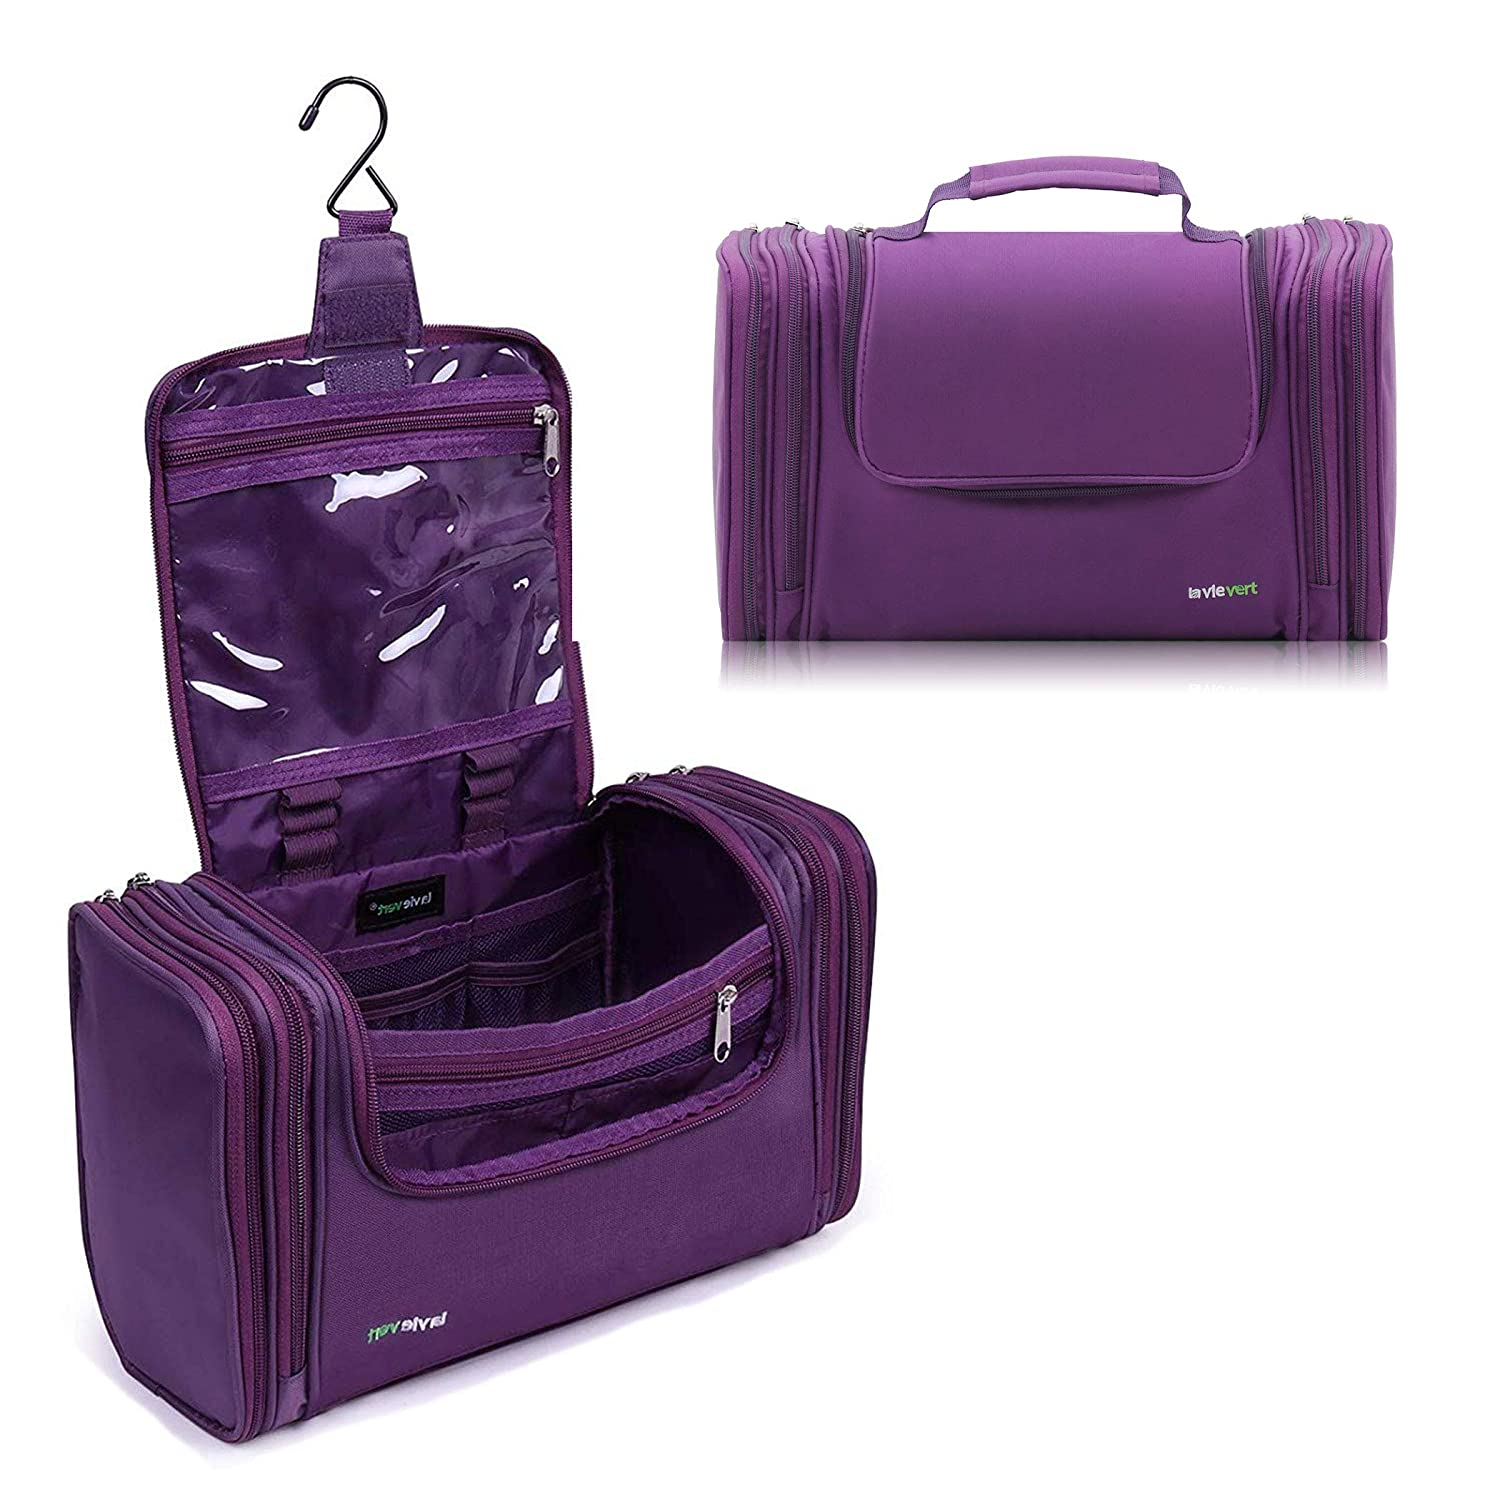 Lavievert Toiletry Bag / Makeup Organizer / Cosmetic Bag / Portable Travel Kit Organizer / Household Storage Pack / Bathroom Storage with Hanging for Business, Vacation, Household -Purple